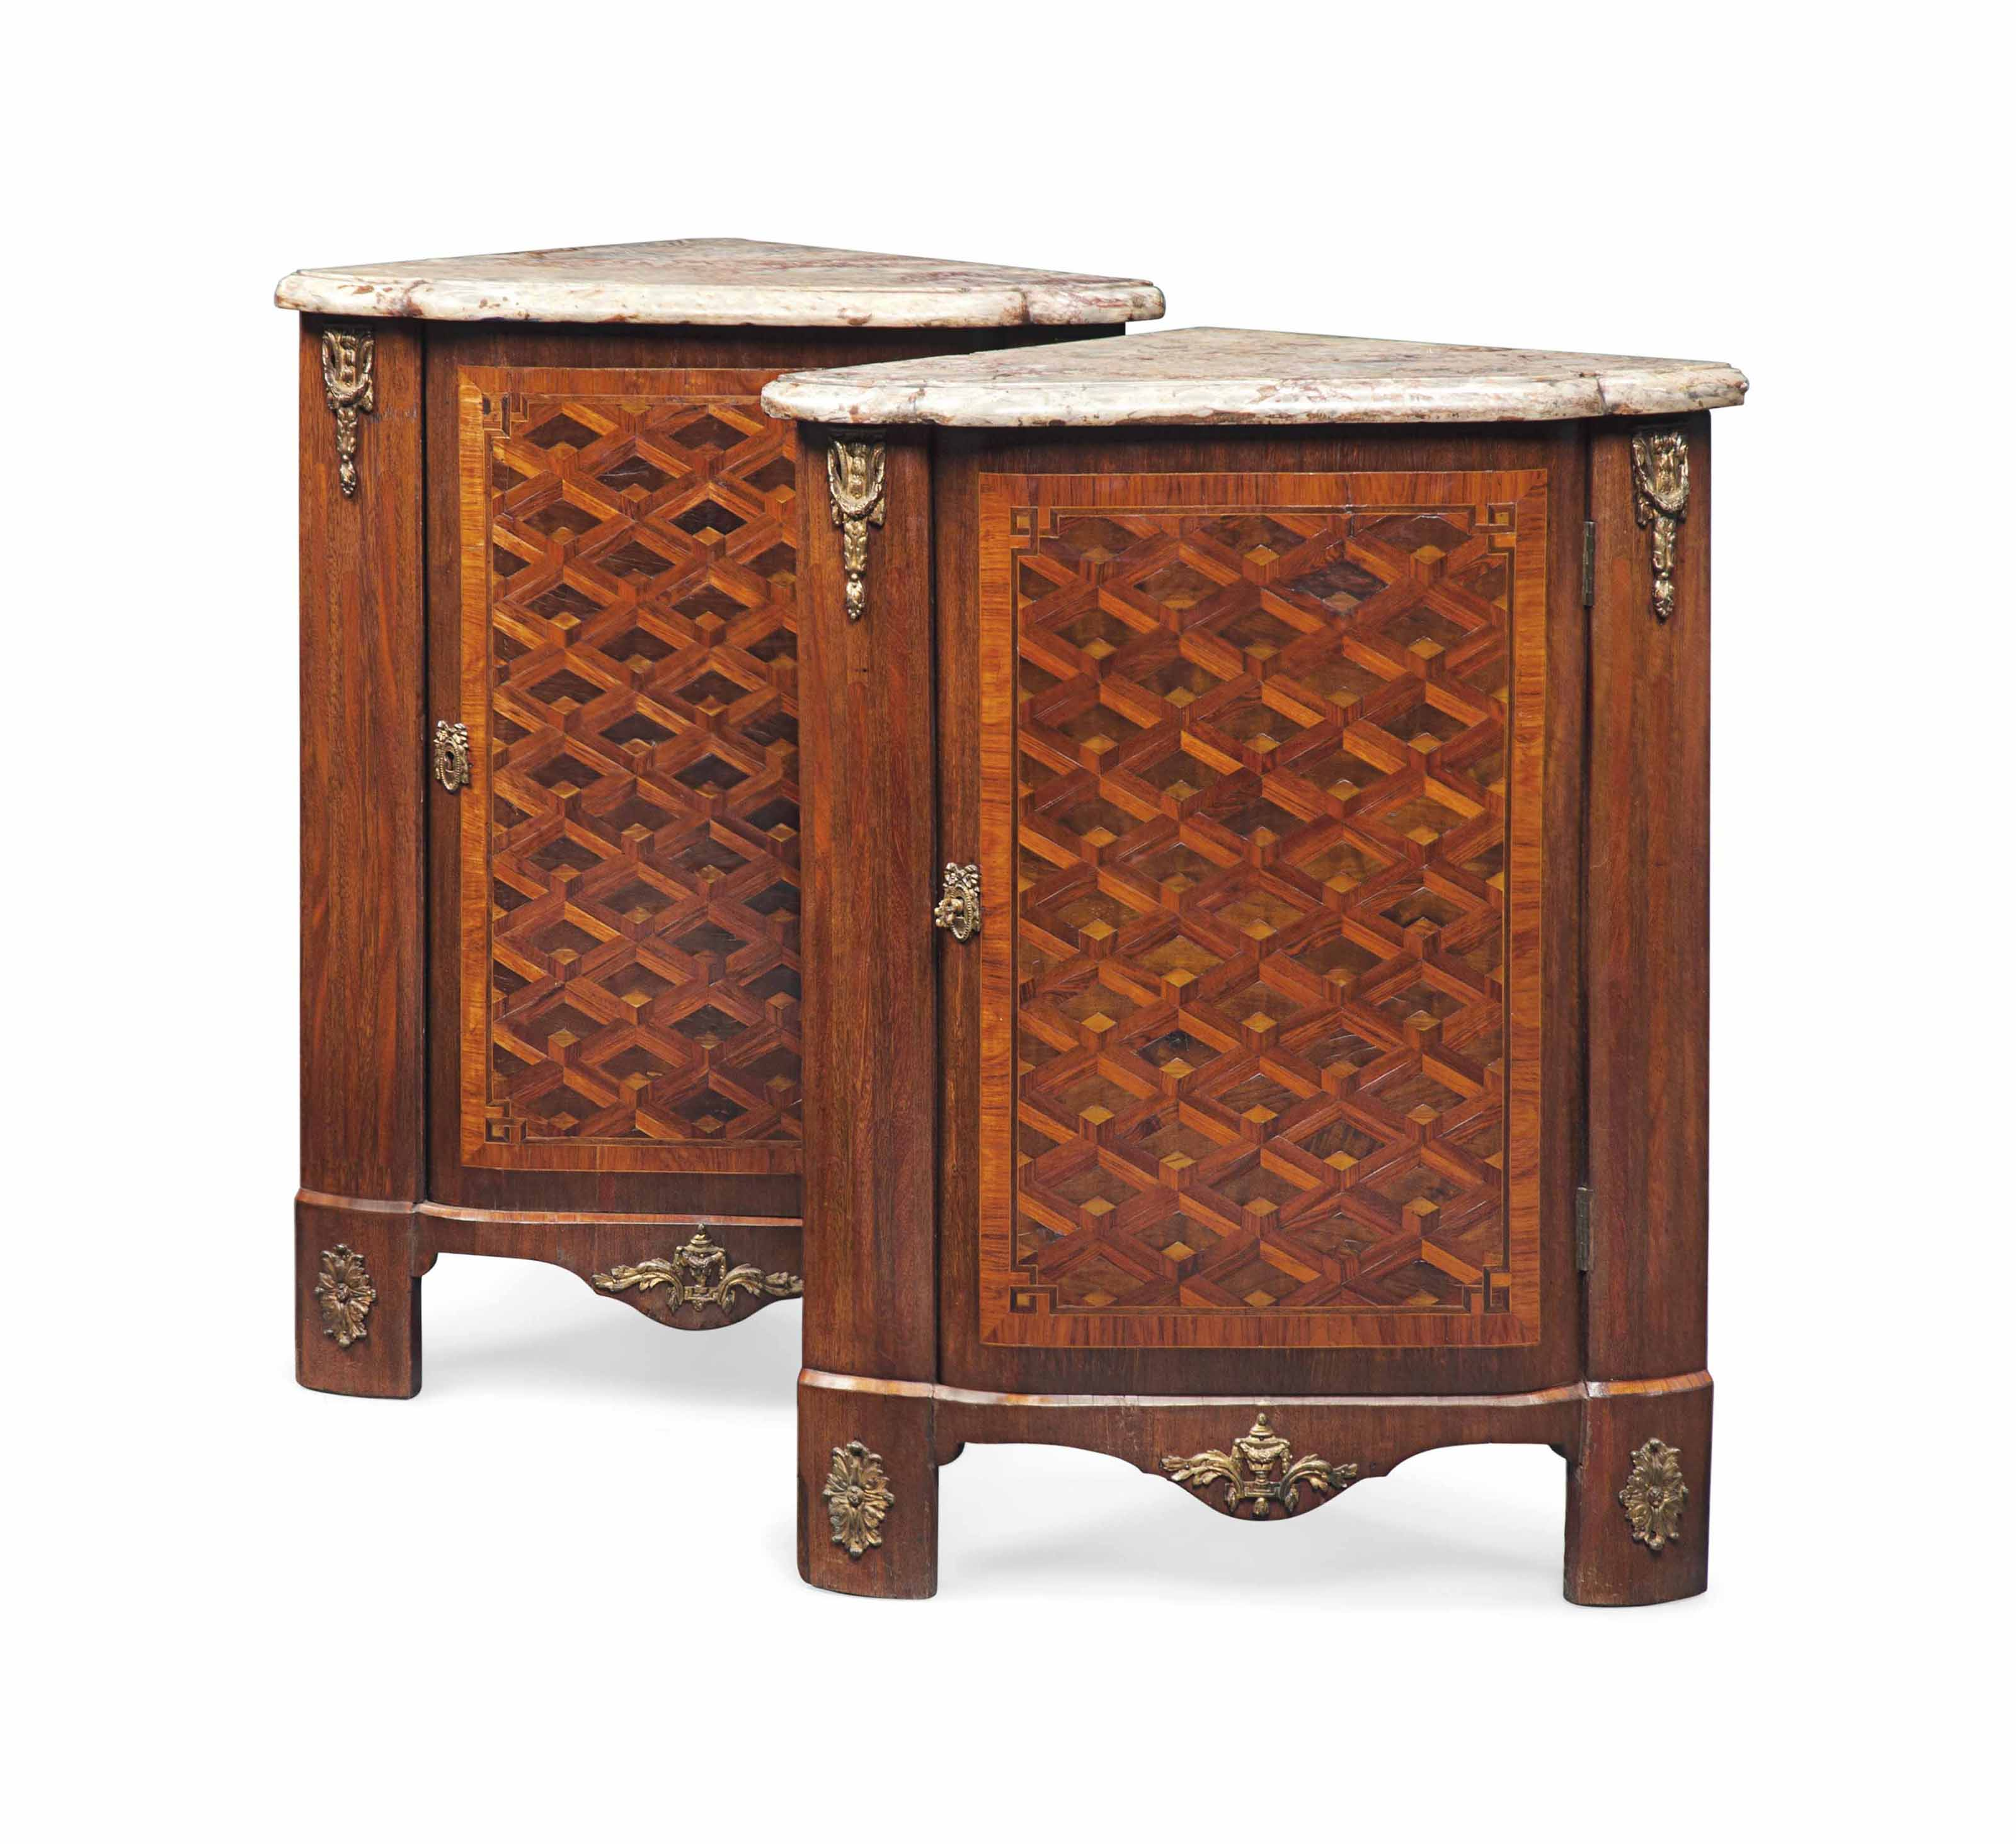 A PAIR OF LATE LOUIS XV ORMOLU-MOUNTED AMARANTH, KINGWOOD AND TULIPWOOD PARQUETRY ENCOIGNEURES